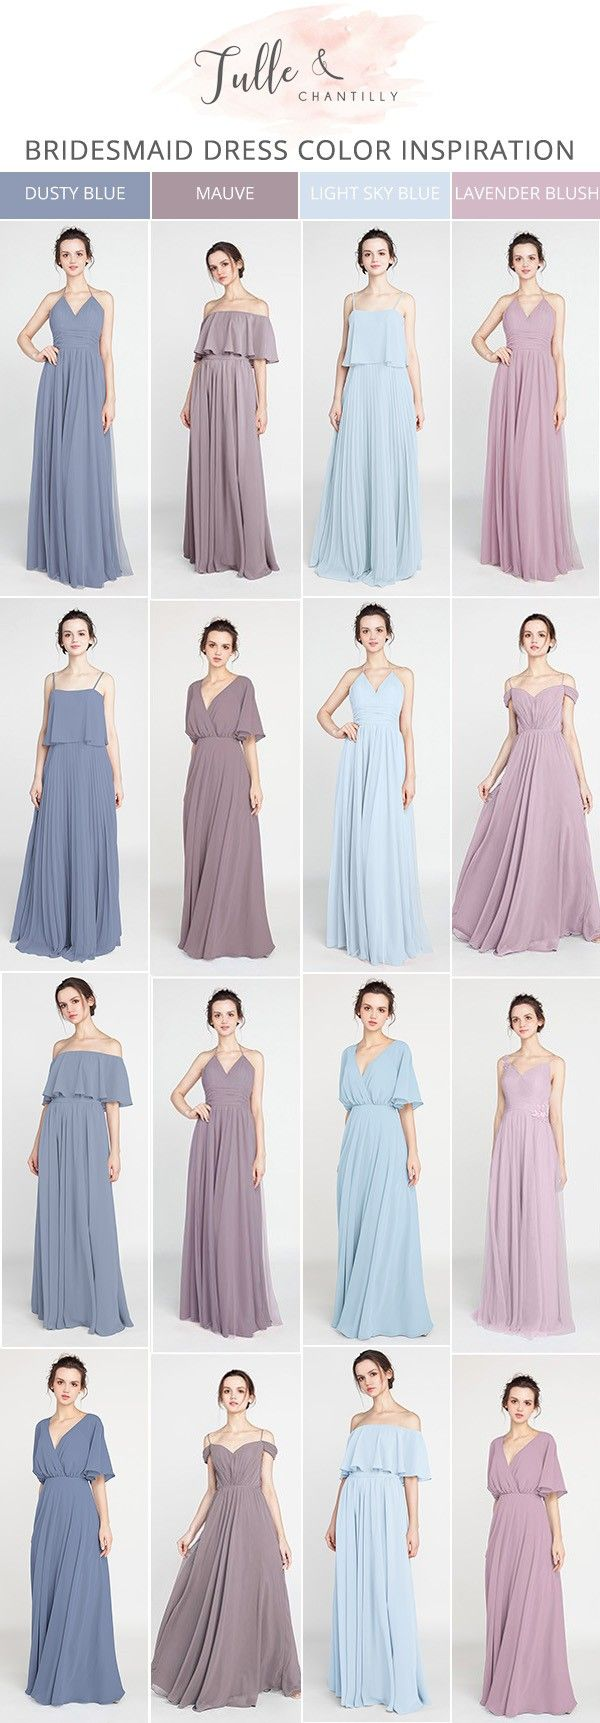 shades of blue and purple mismatched bridesmaid dresses for 2018 #bridesmaiddresses #bridesmaid